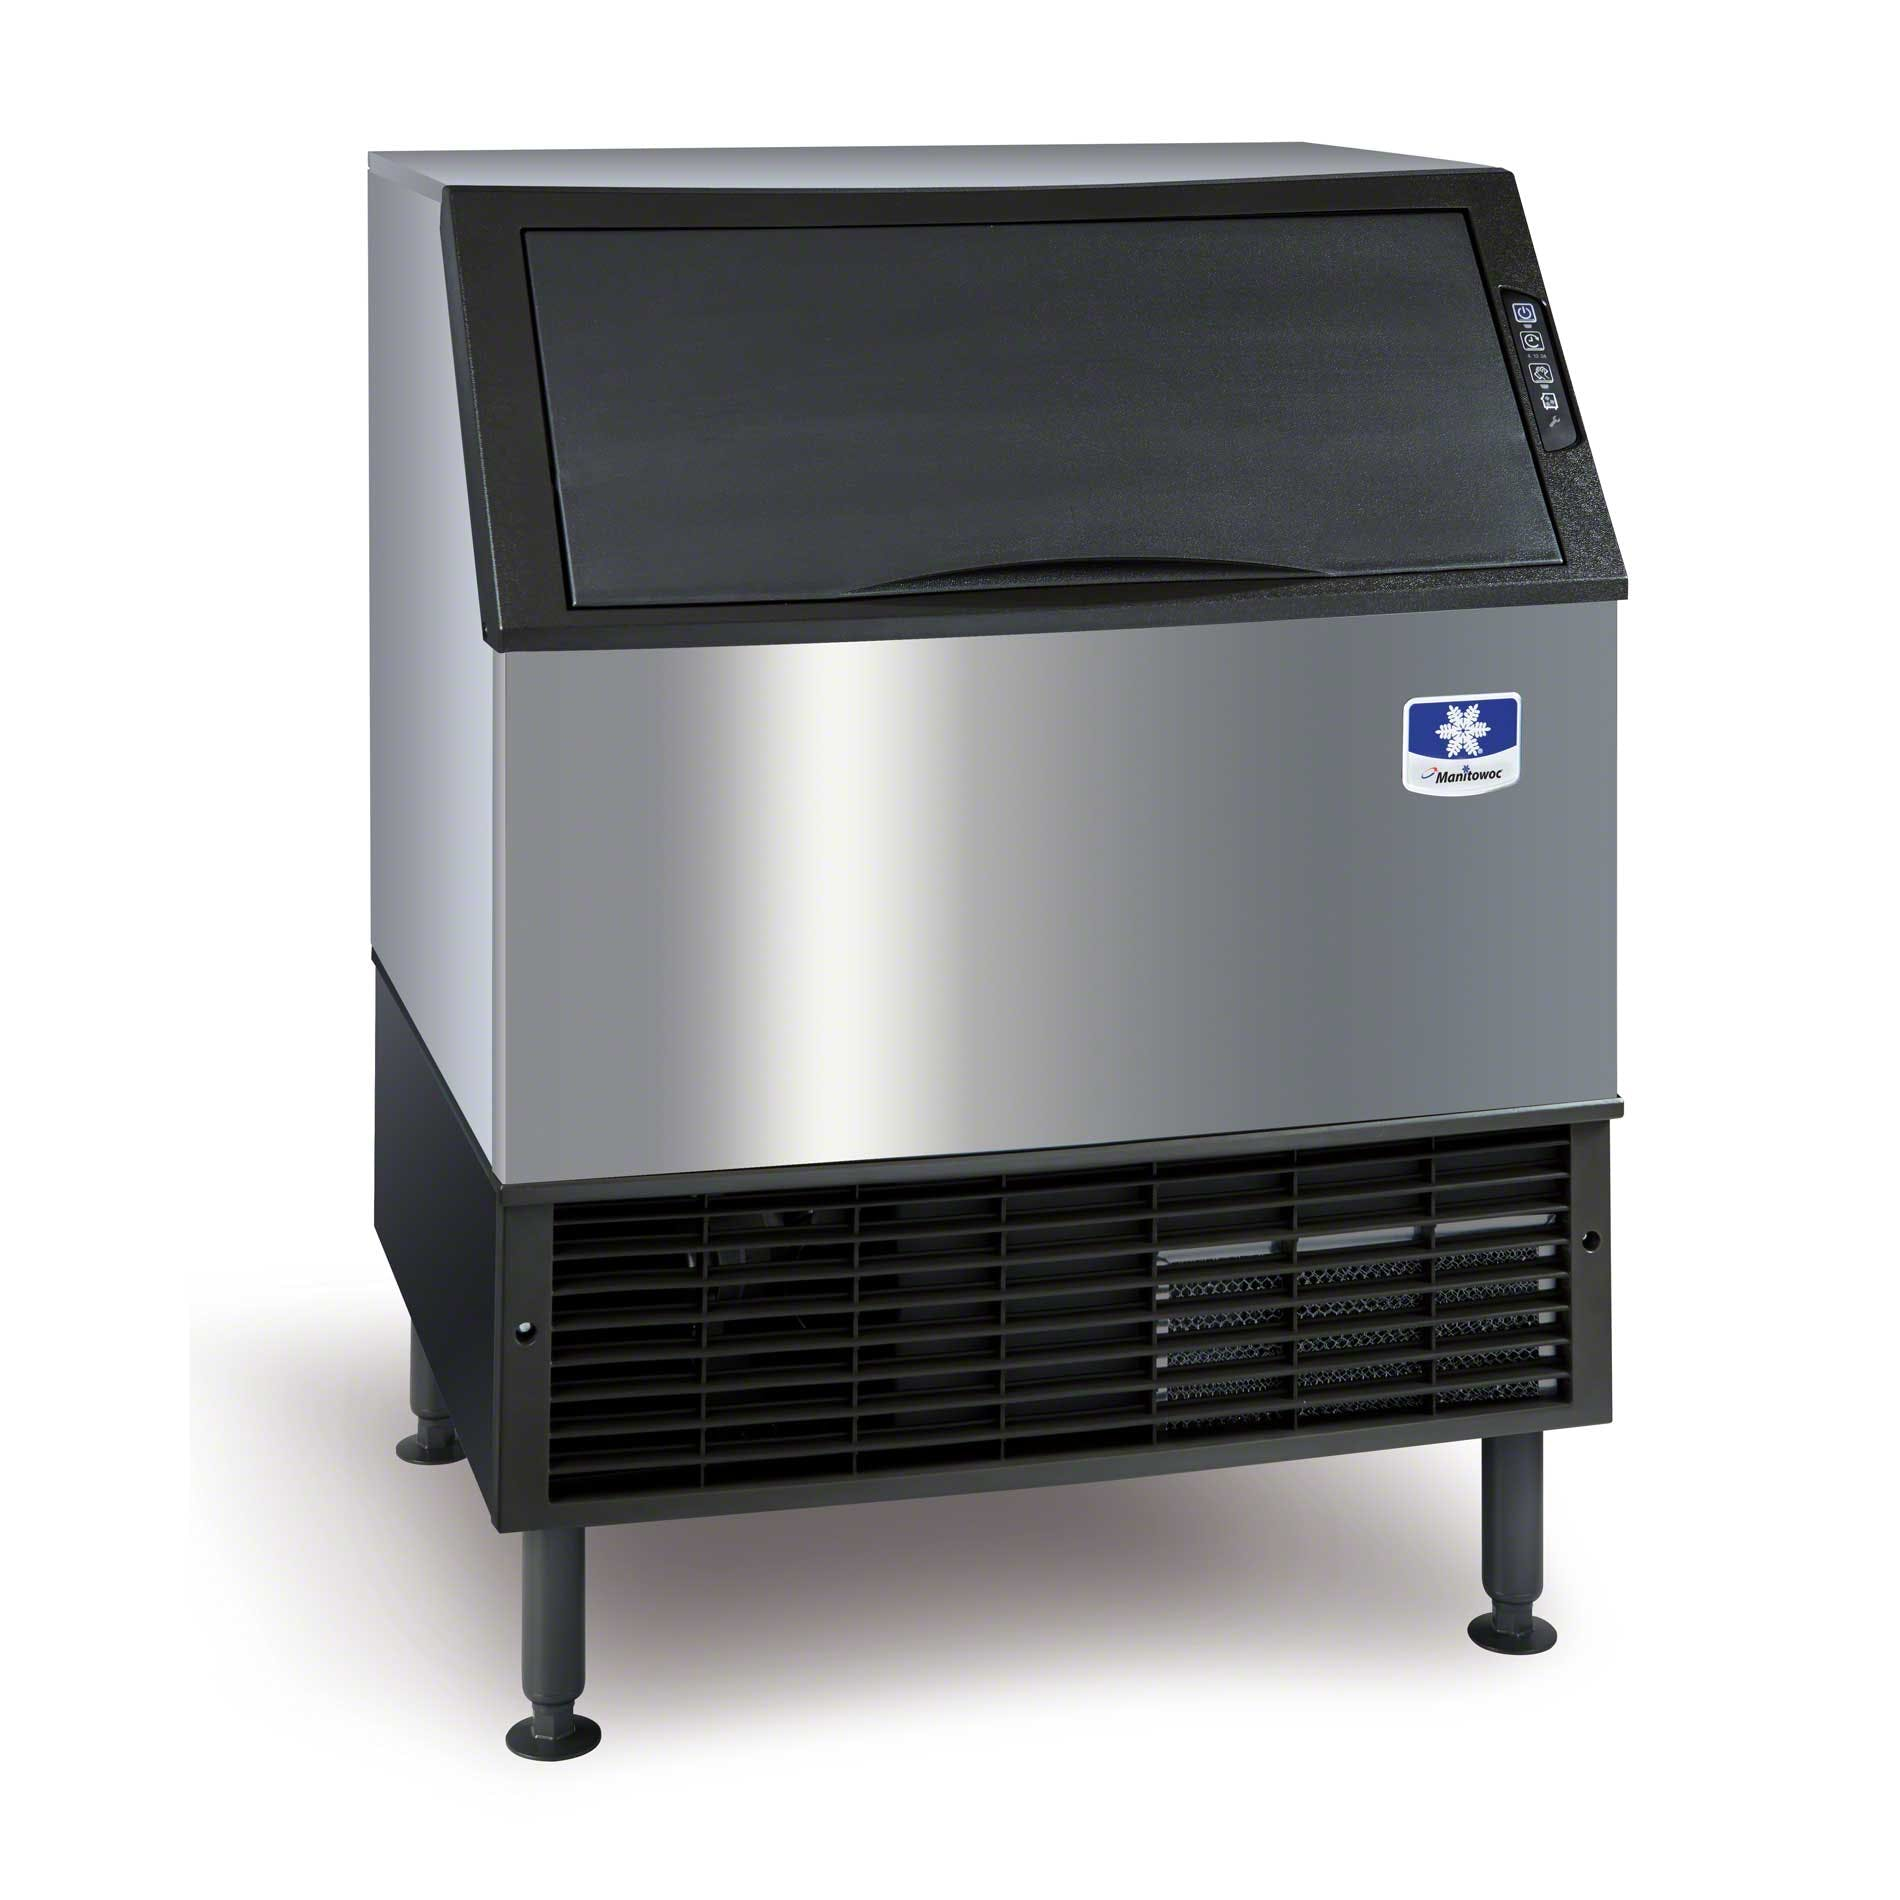 Manitowoc - UY-0310W 271 lb Half-Cube Undercounter Ice Machine - U-310 Neo Series Ice machine sold by Food Service Warehouse